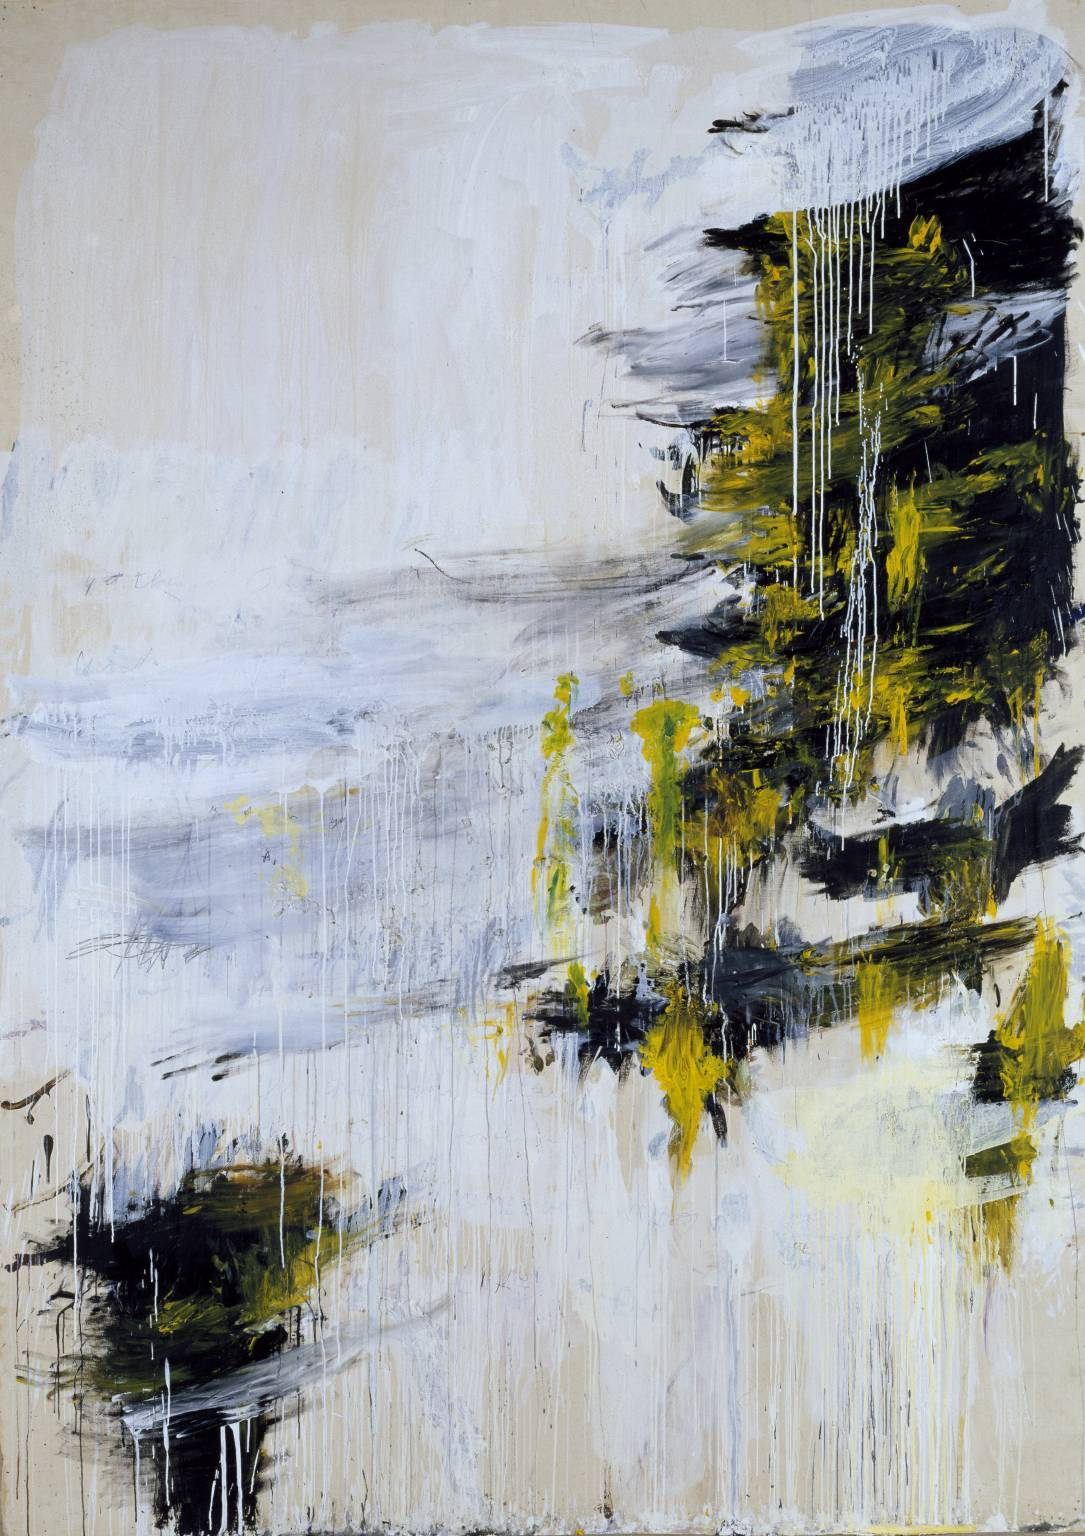 fckyeaharthistory:  Cy Twombly - Quattro Stagioni: Inverno 1993-5, 1993-95. Acrylic, oil, and pencil on canvas